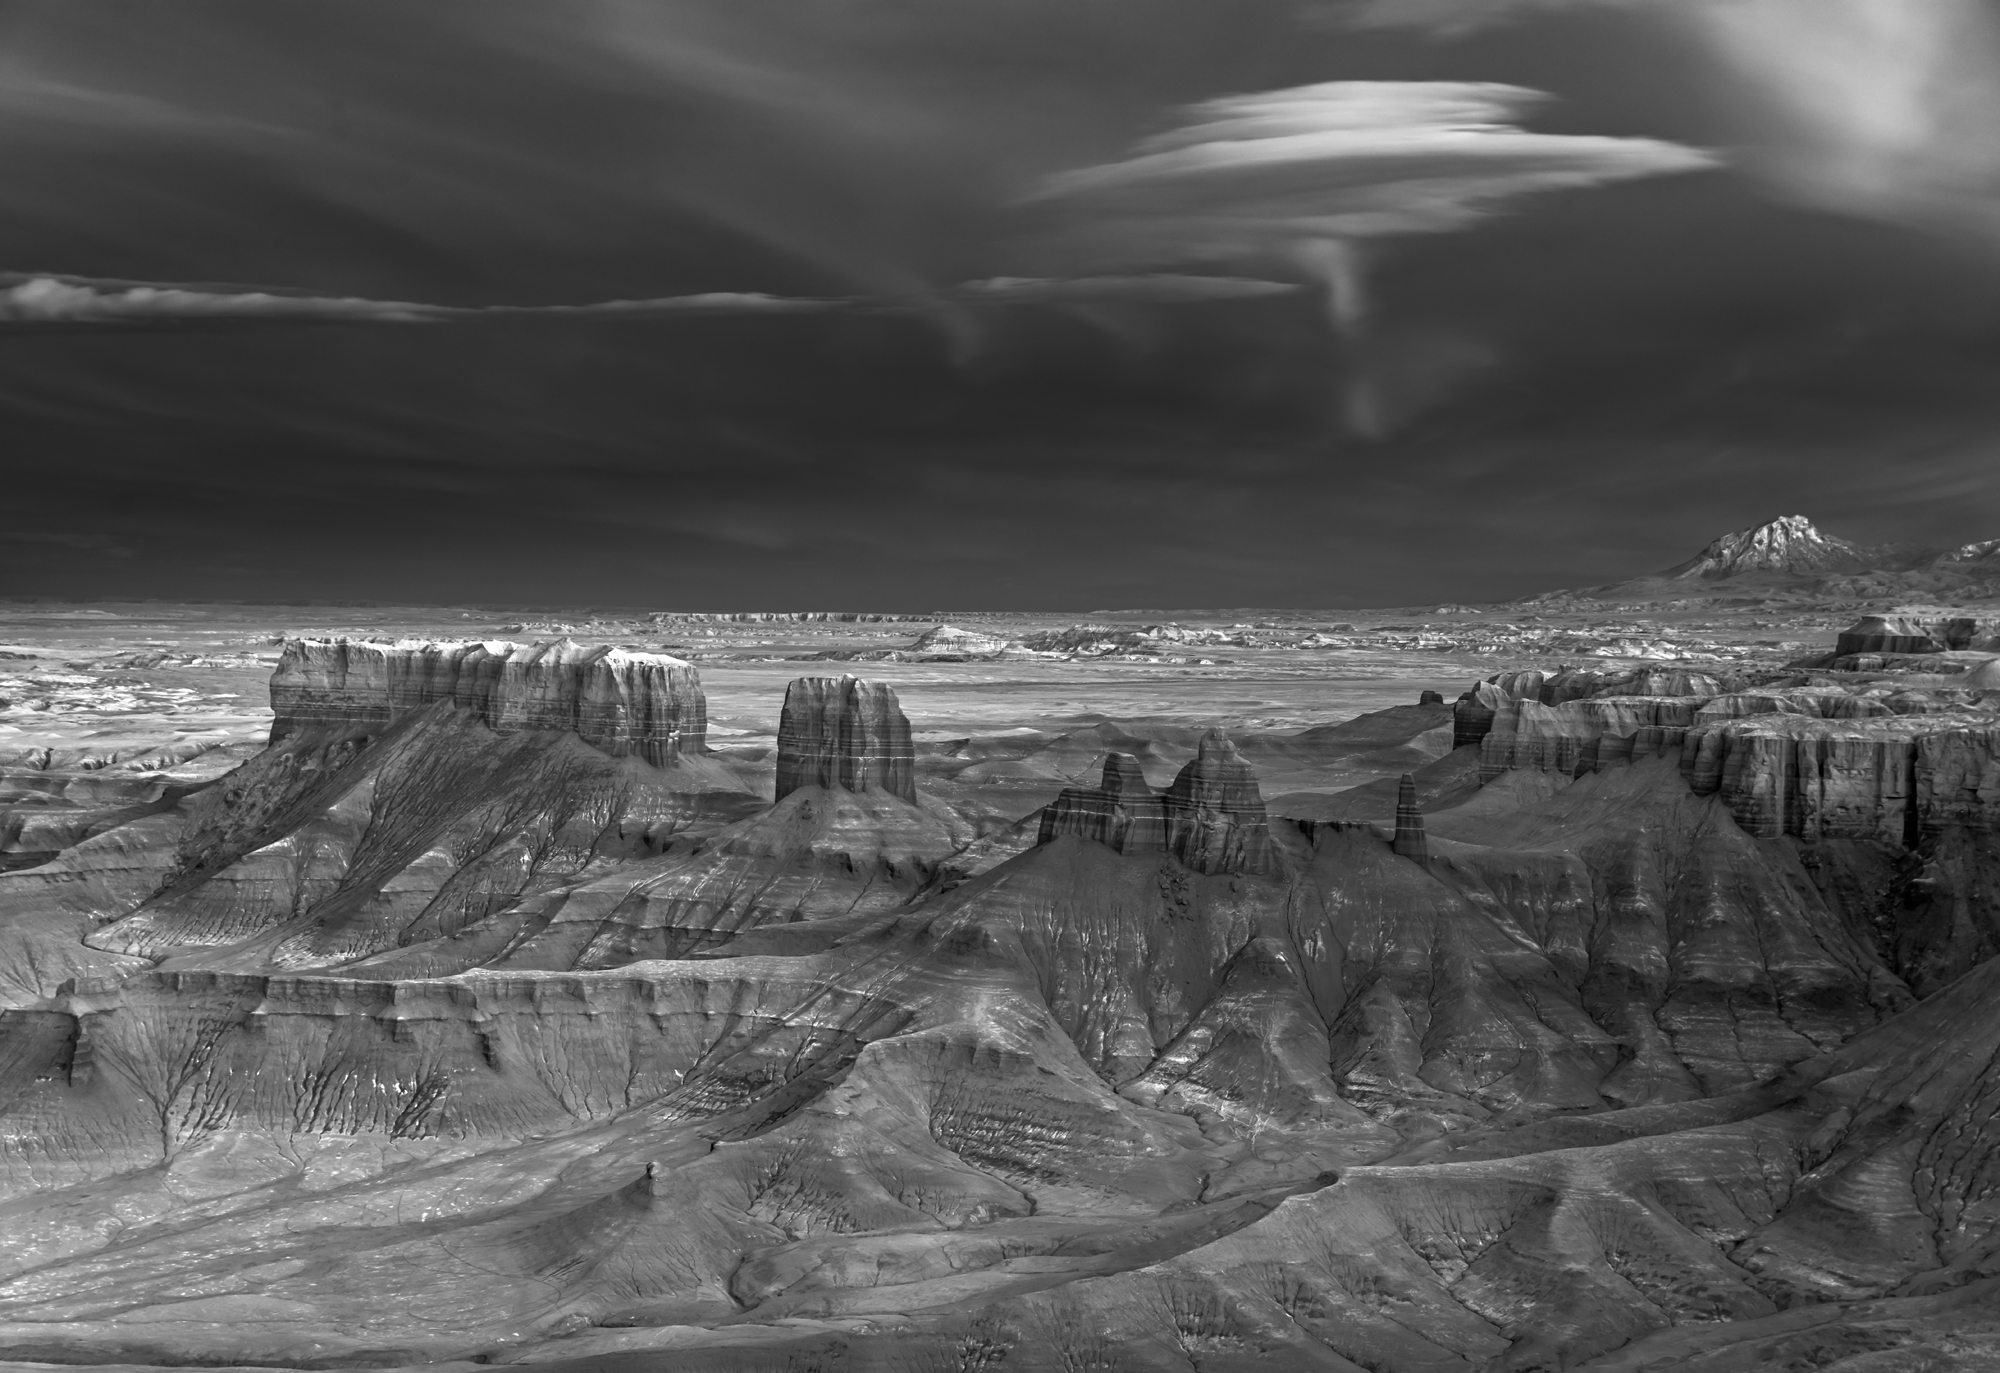 Photography Monochrome Mountains Long Exposure USA Mitch Dobrowner Rock Rock Formation Landscape Nat 2000x1373